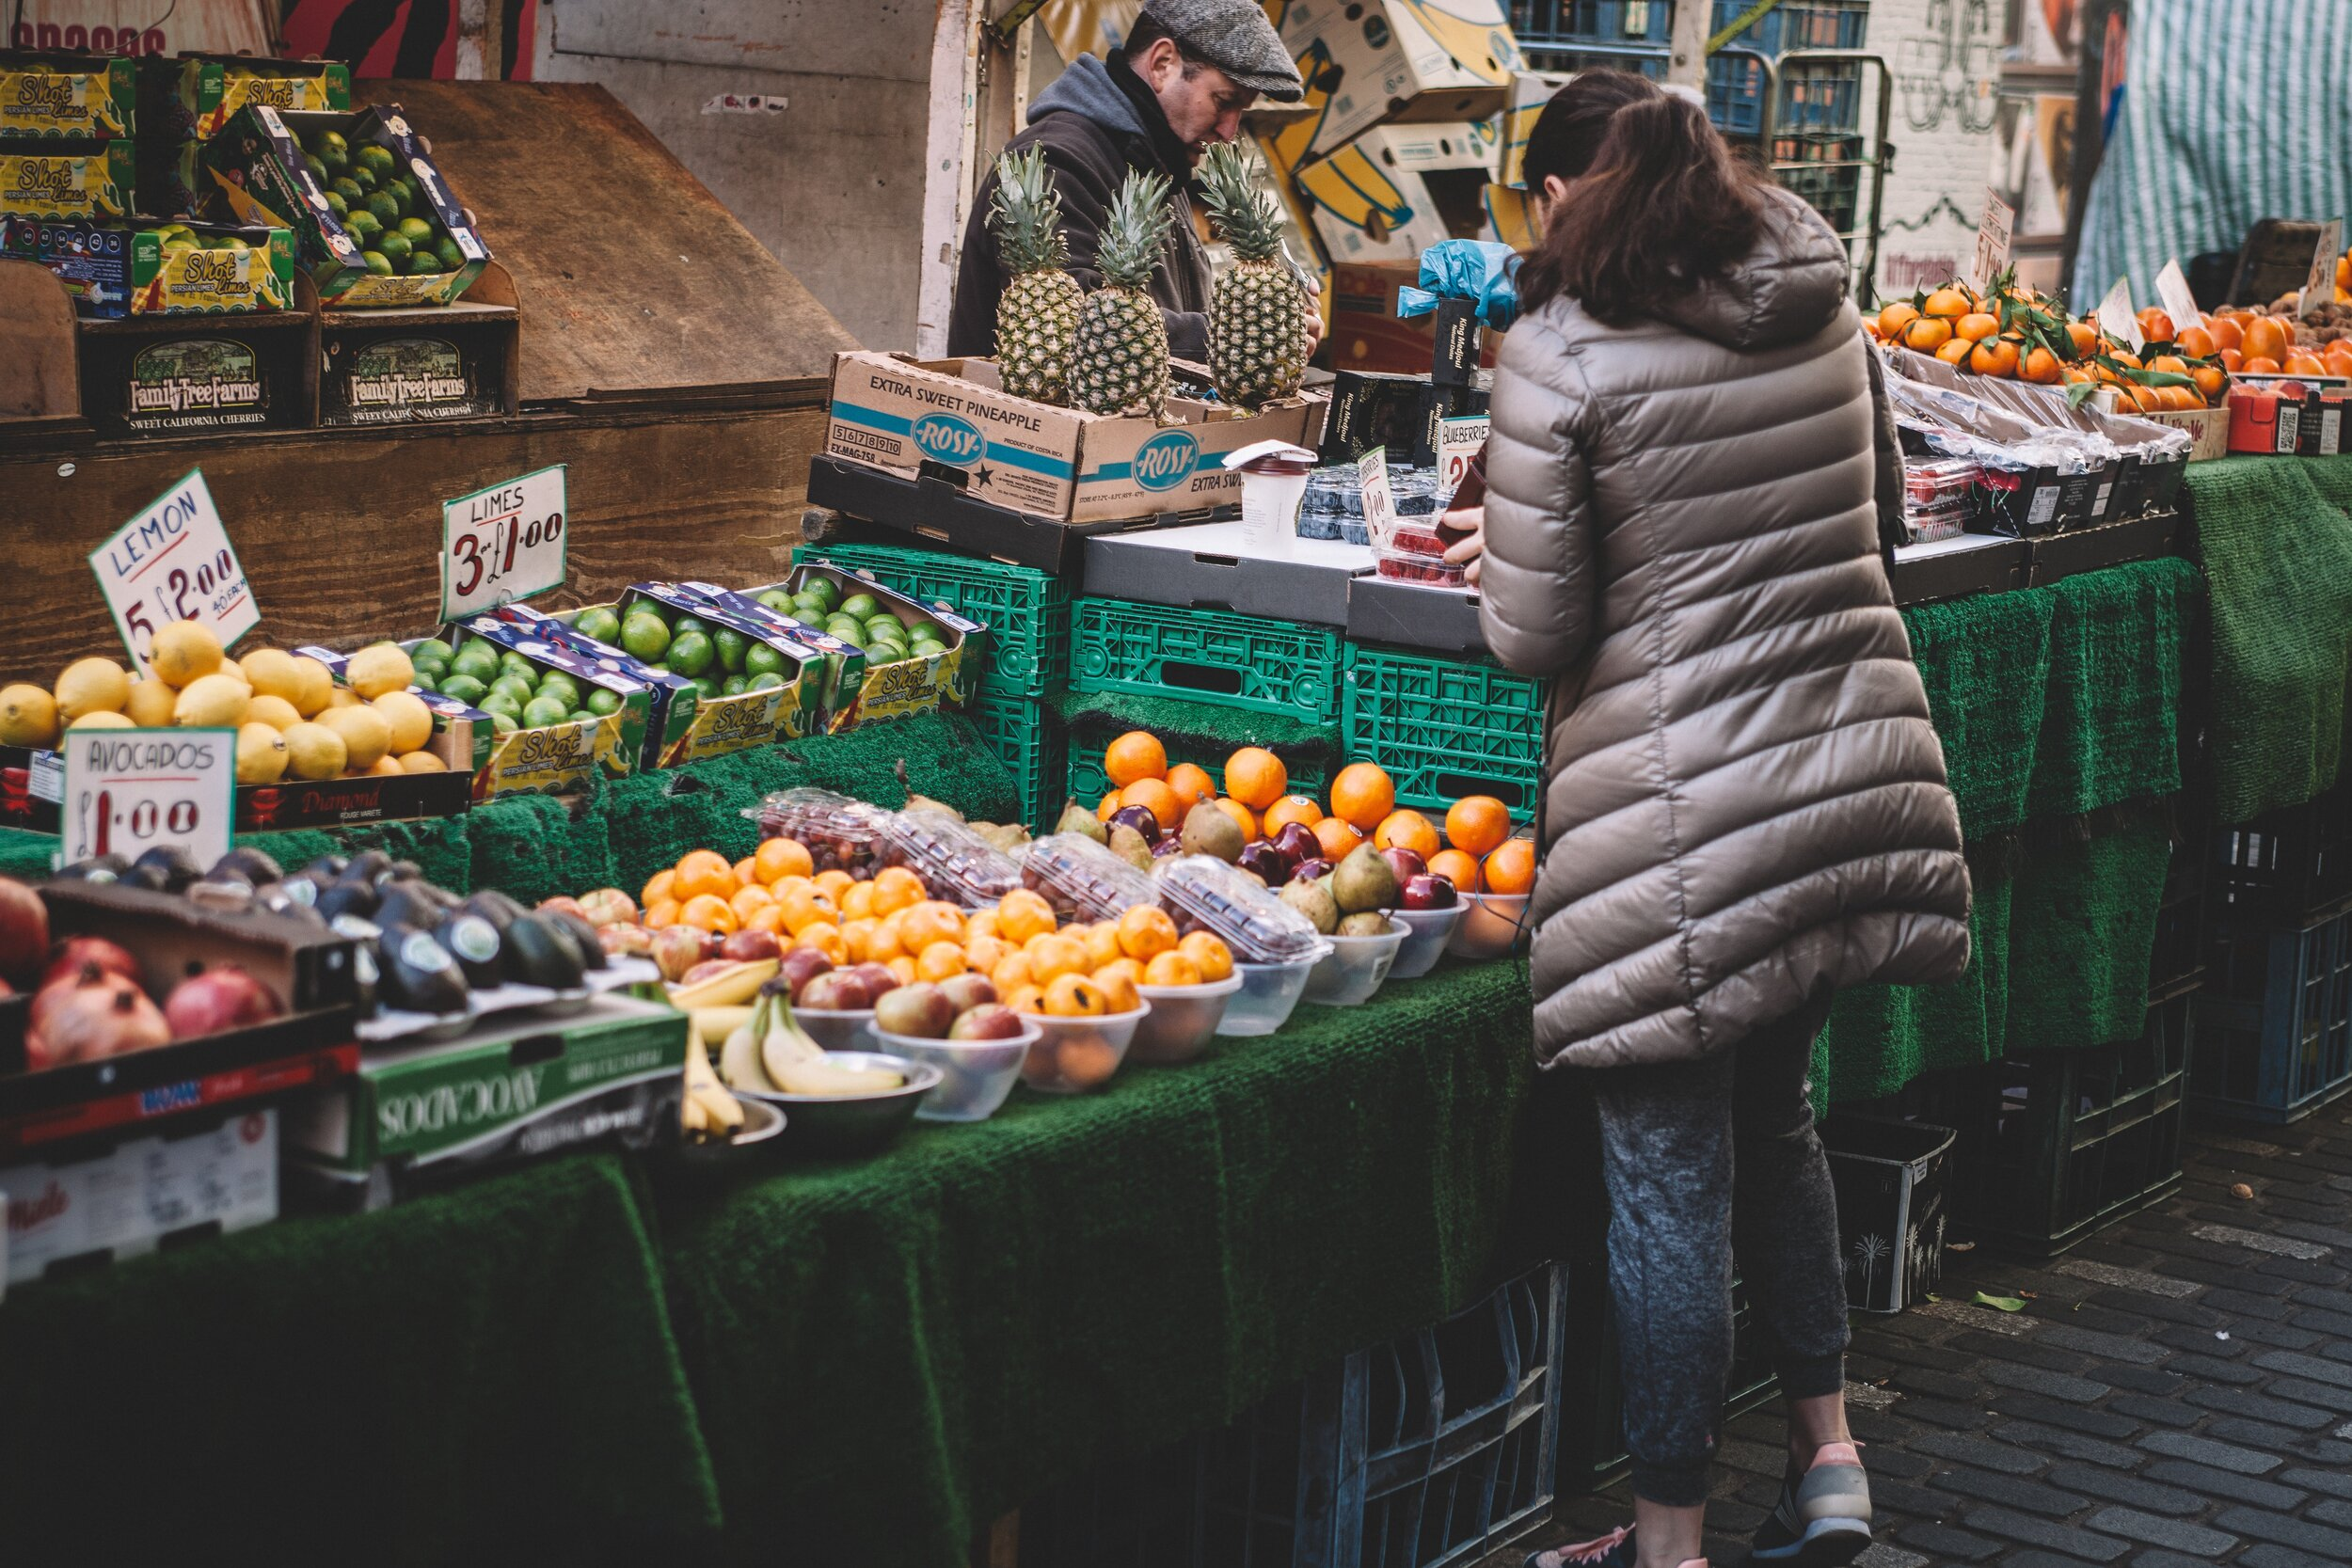 Connecting people to better options - We connect people to healthy, quality, local (when possible!) food sellers that are recommended by trusted educators. We believe if people have the proper access to knowledge and the food itself, they'll make better choices.